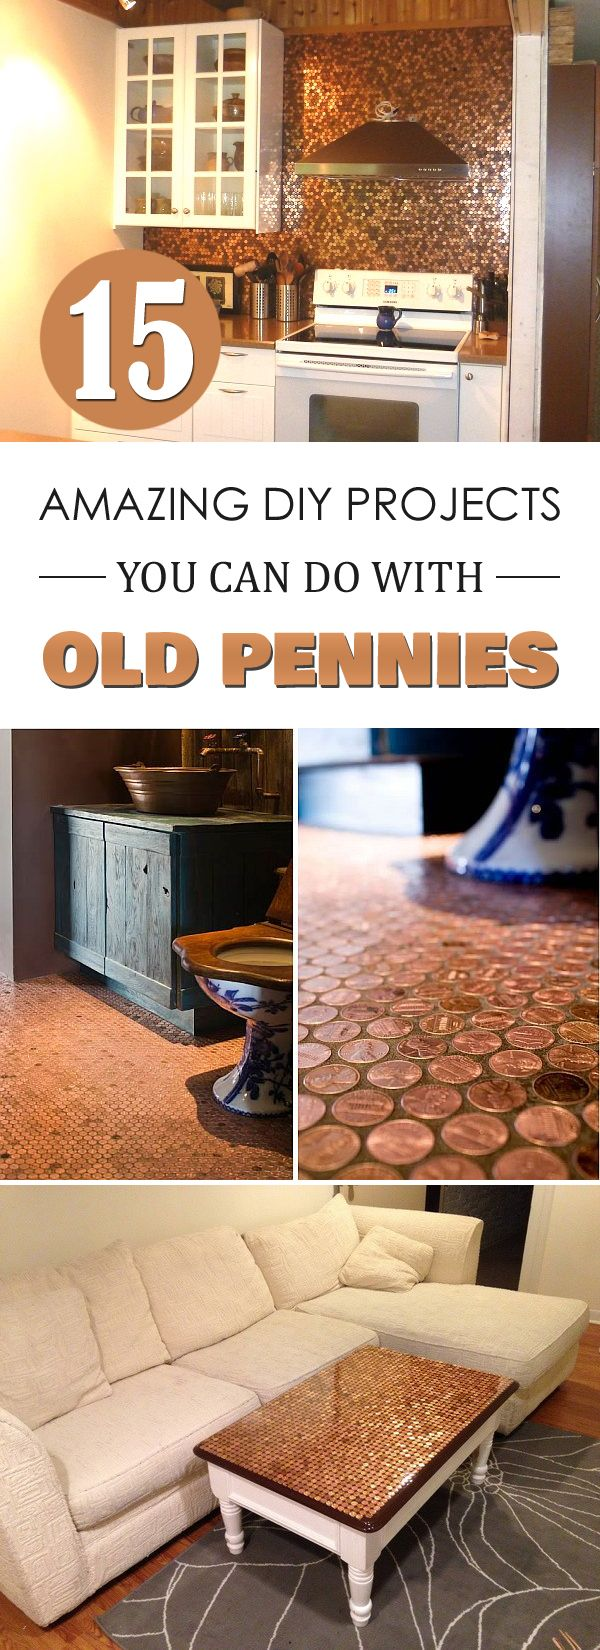 15 Amazing DIY Projects You Can Do With Old Pennies